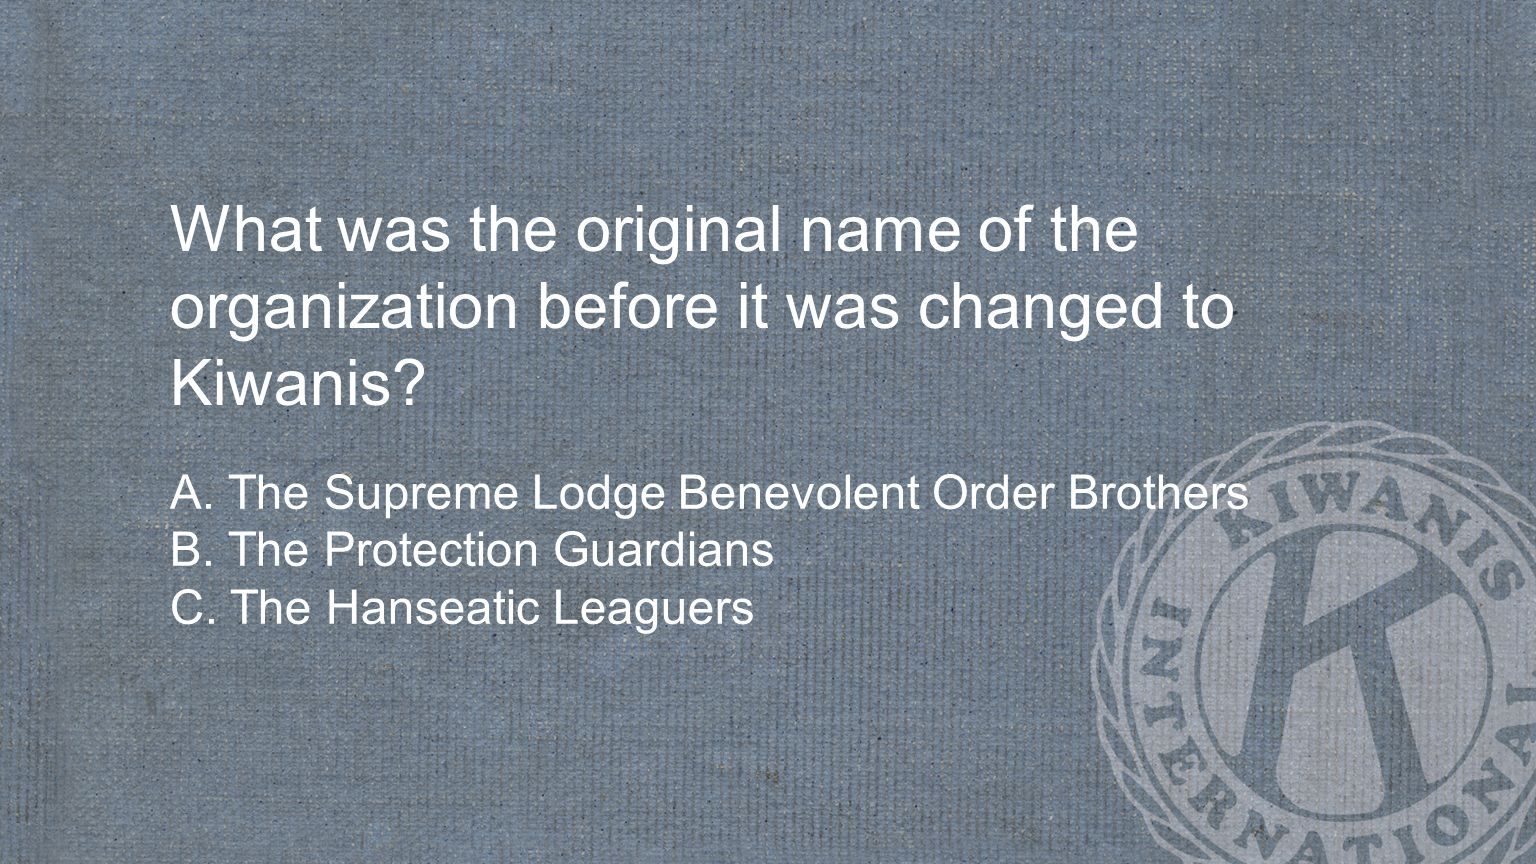 What was the original name of the organization before it was changed to Kiwanis